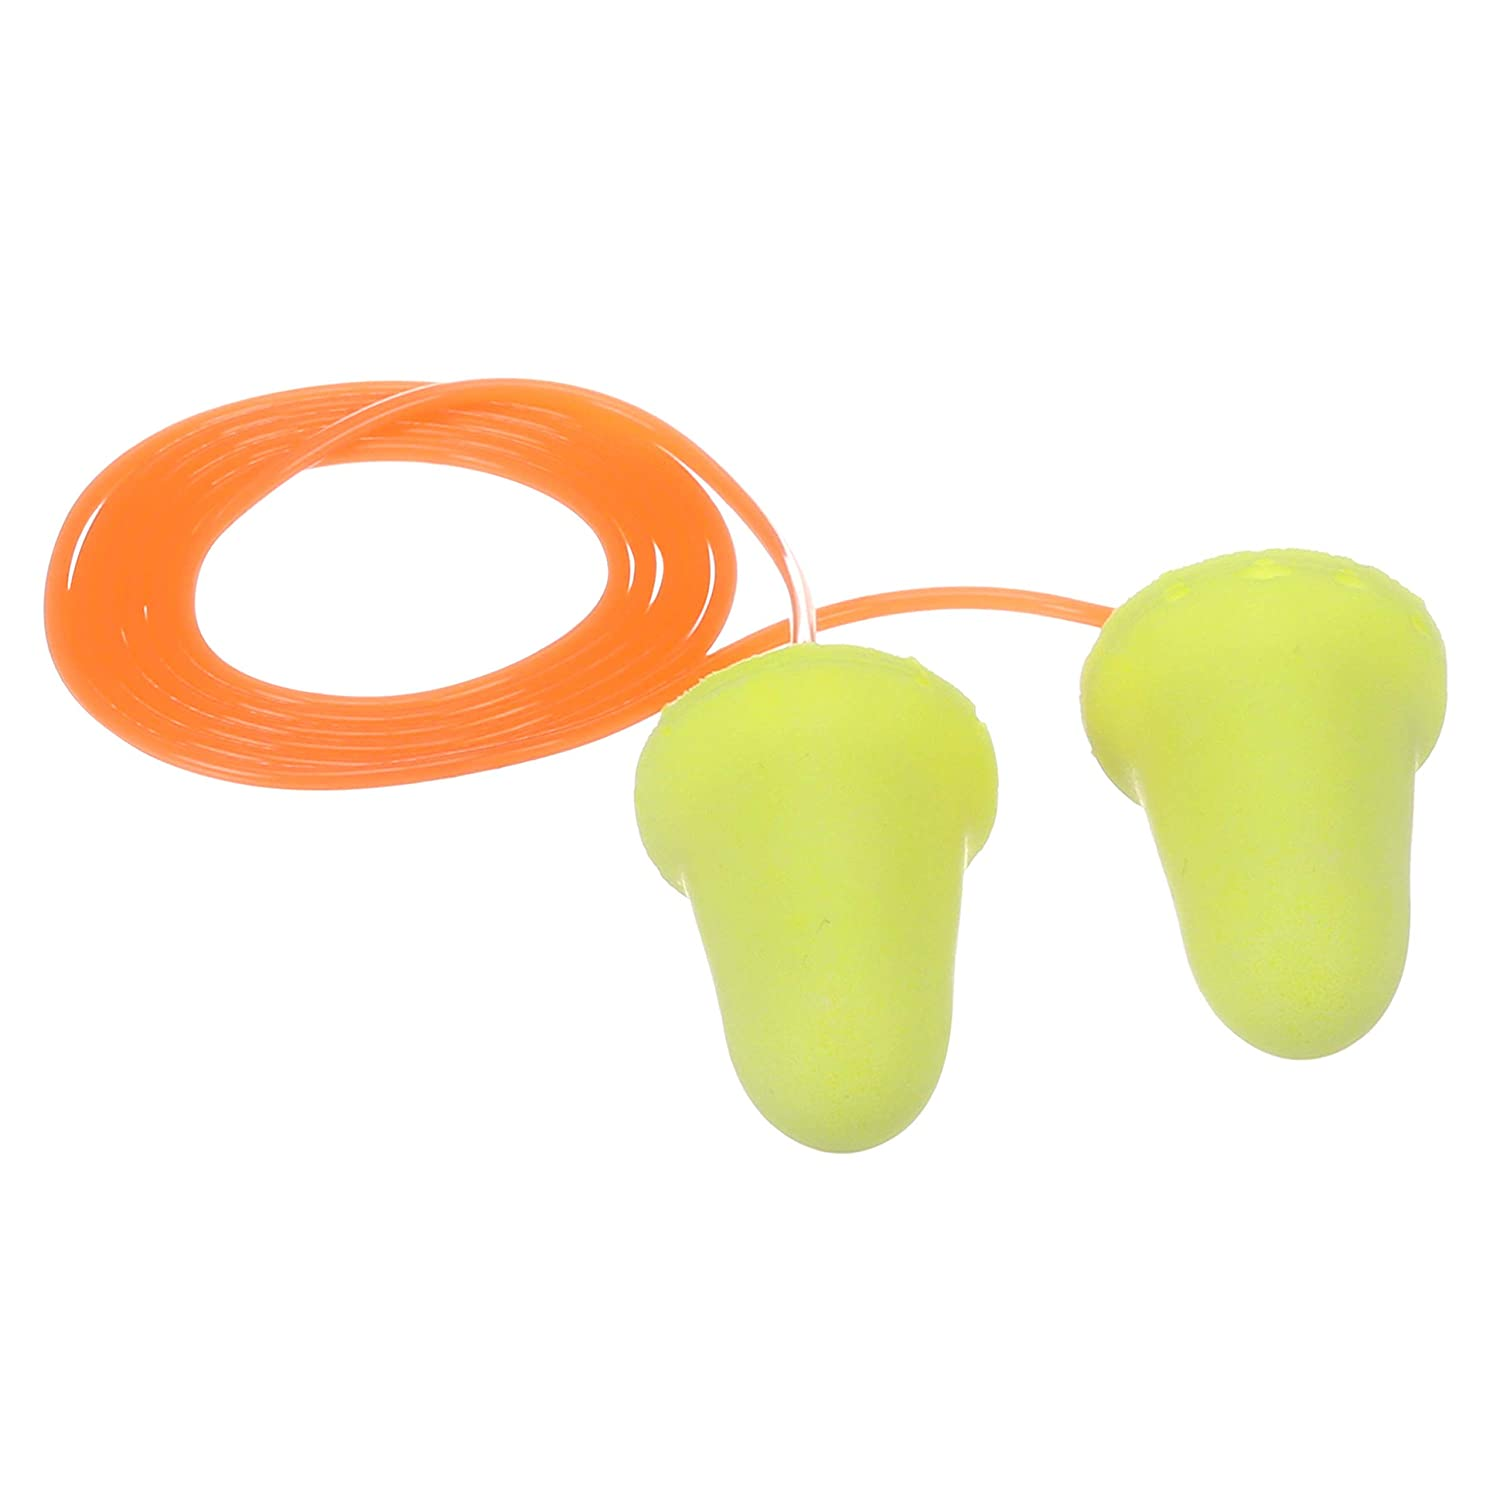 3M E-A-Rsoft FX Corded Earplugs, Hearing Conservation 312-1260 in Poly Bag by 3M   B008MCUDTQ